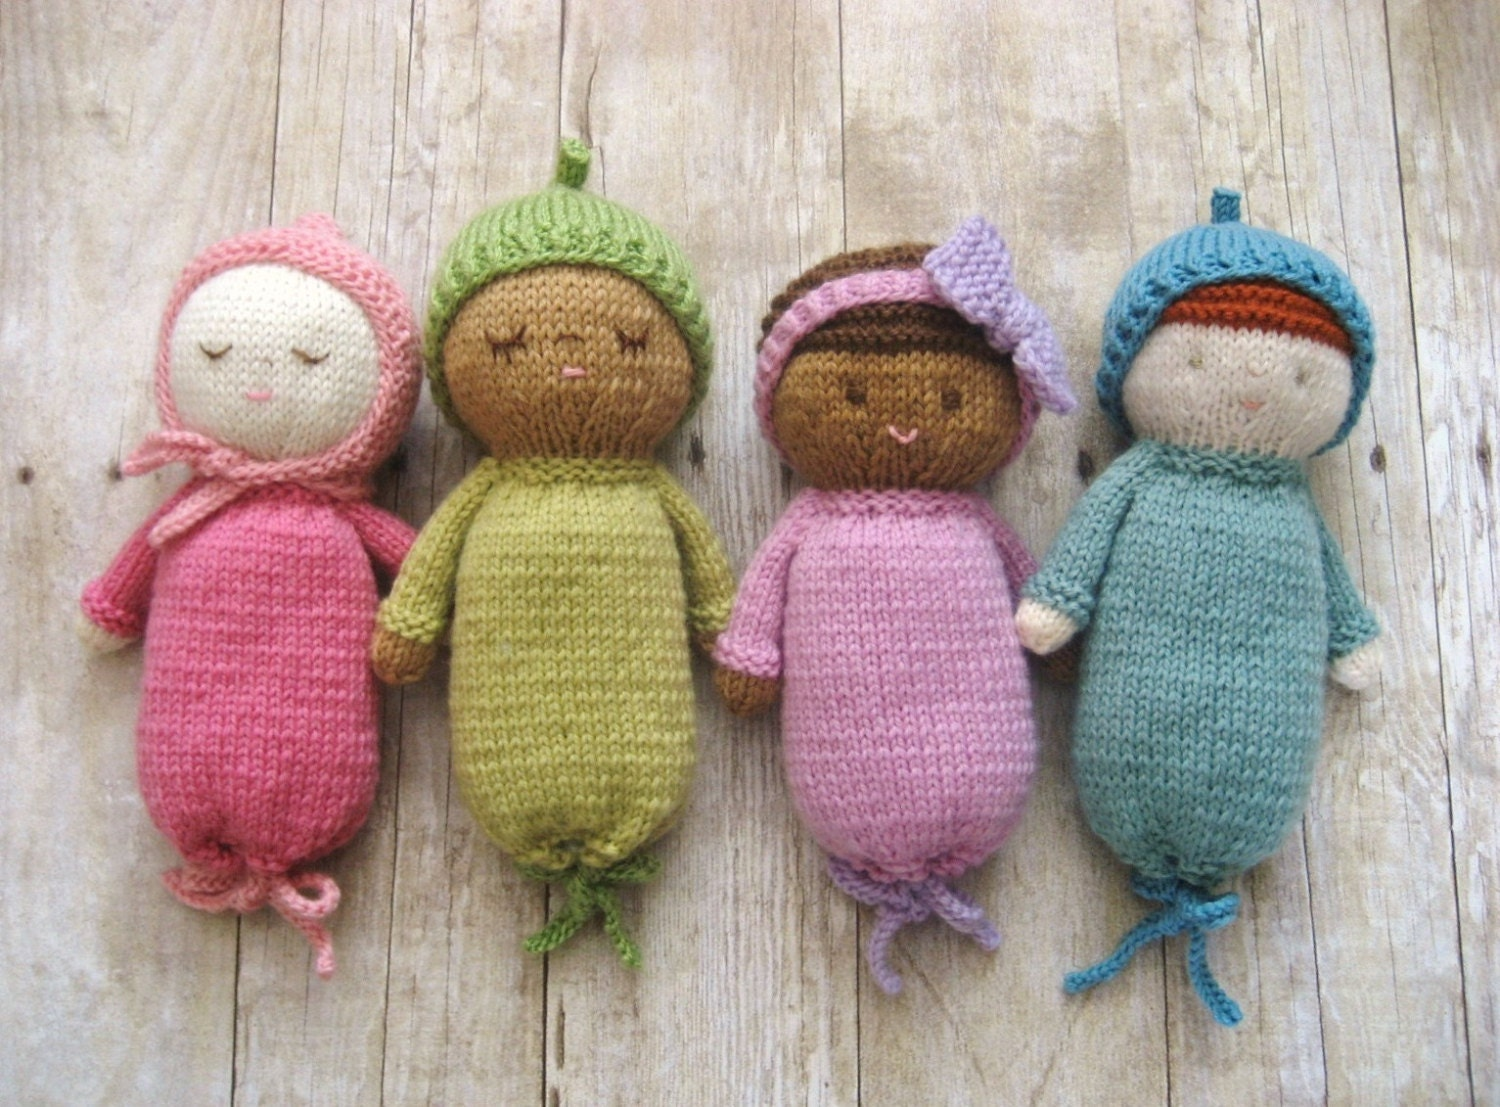 Amigurumi Baby : Amigurumi knit baby doll patterns digital download